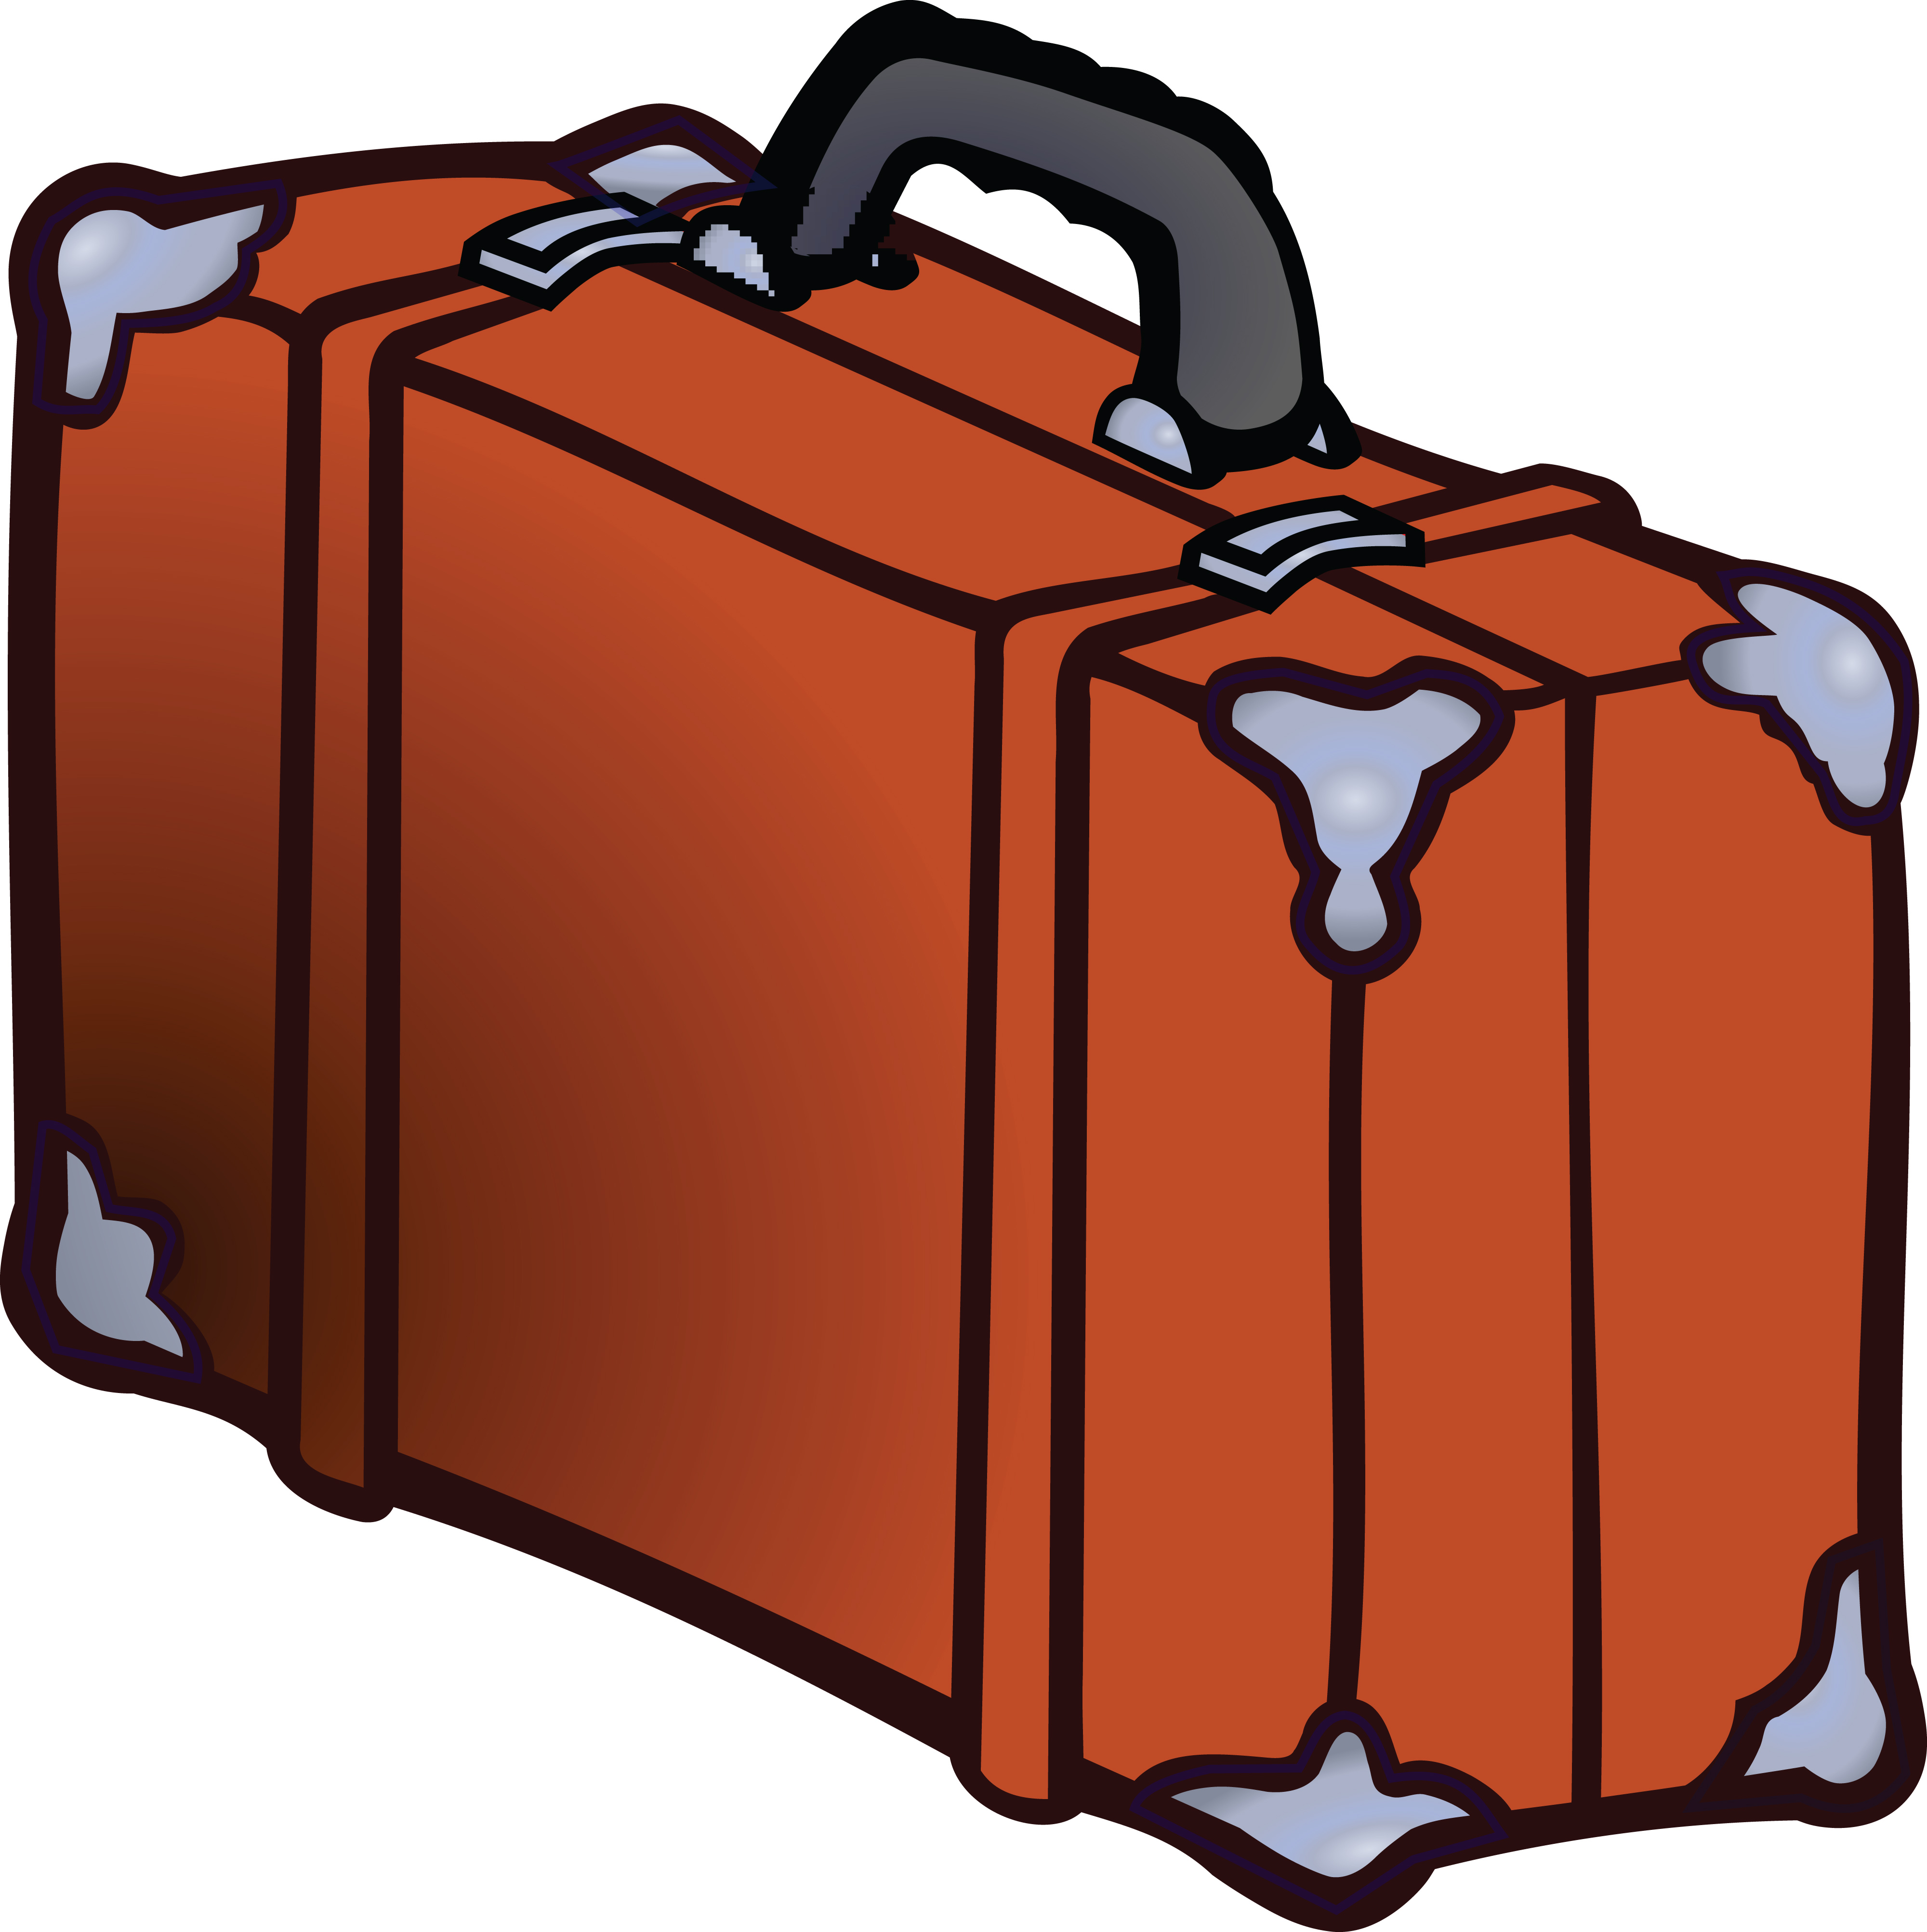 Luggage Clipart-Clipartlook.com-4000-Luggage Clipart-Clipartlook.com-4000-1